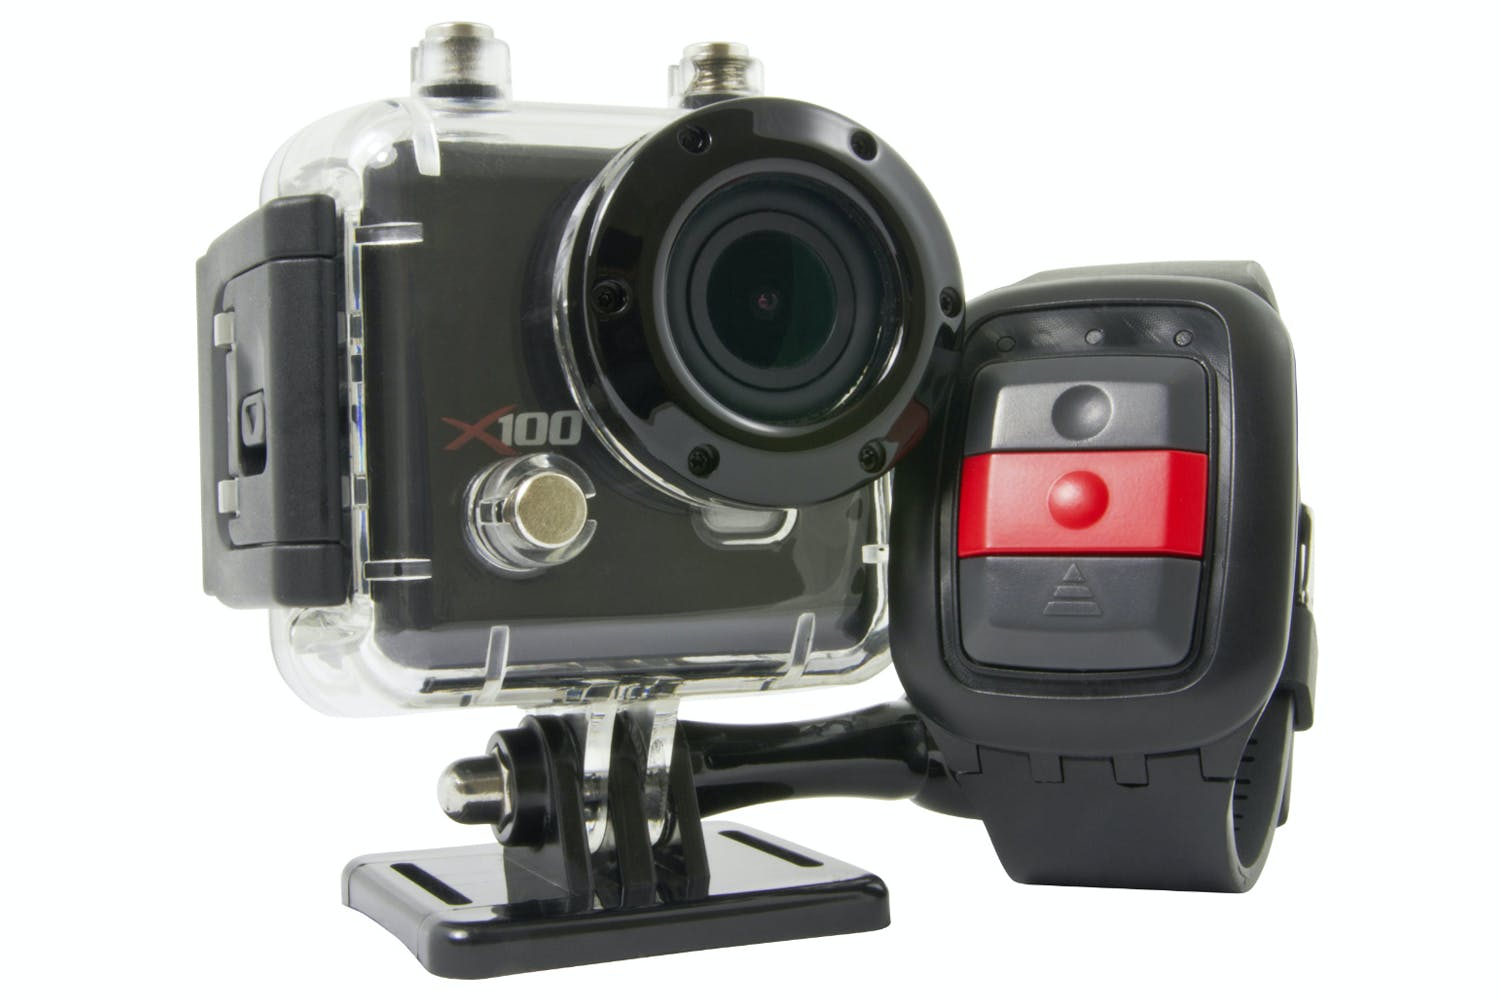 Kaiser Baas Wifi Action Cam X100